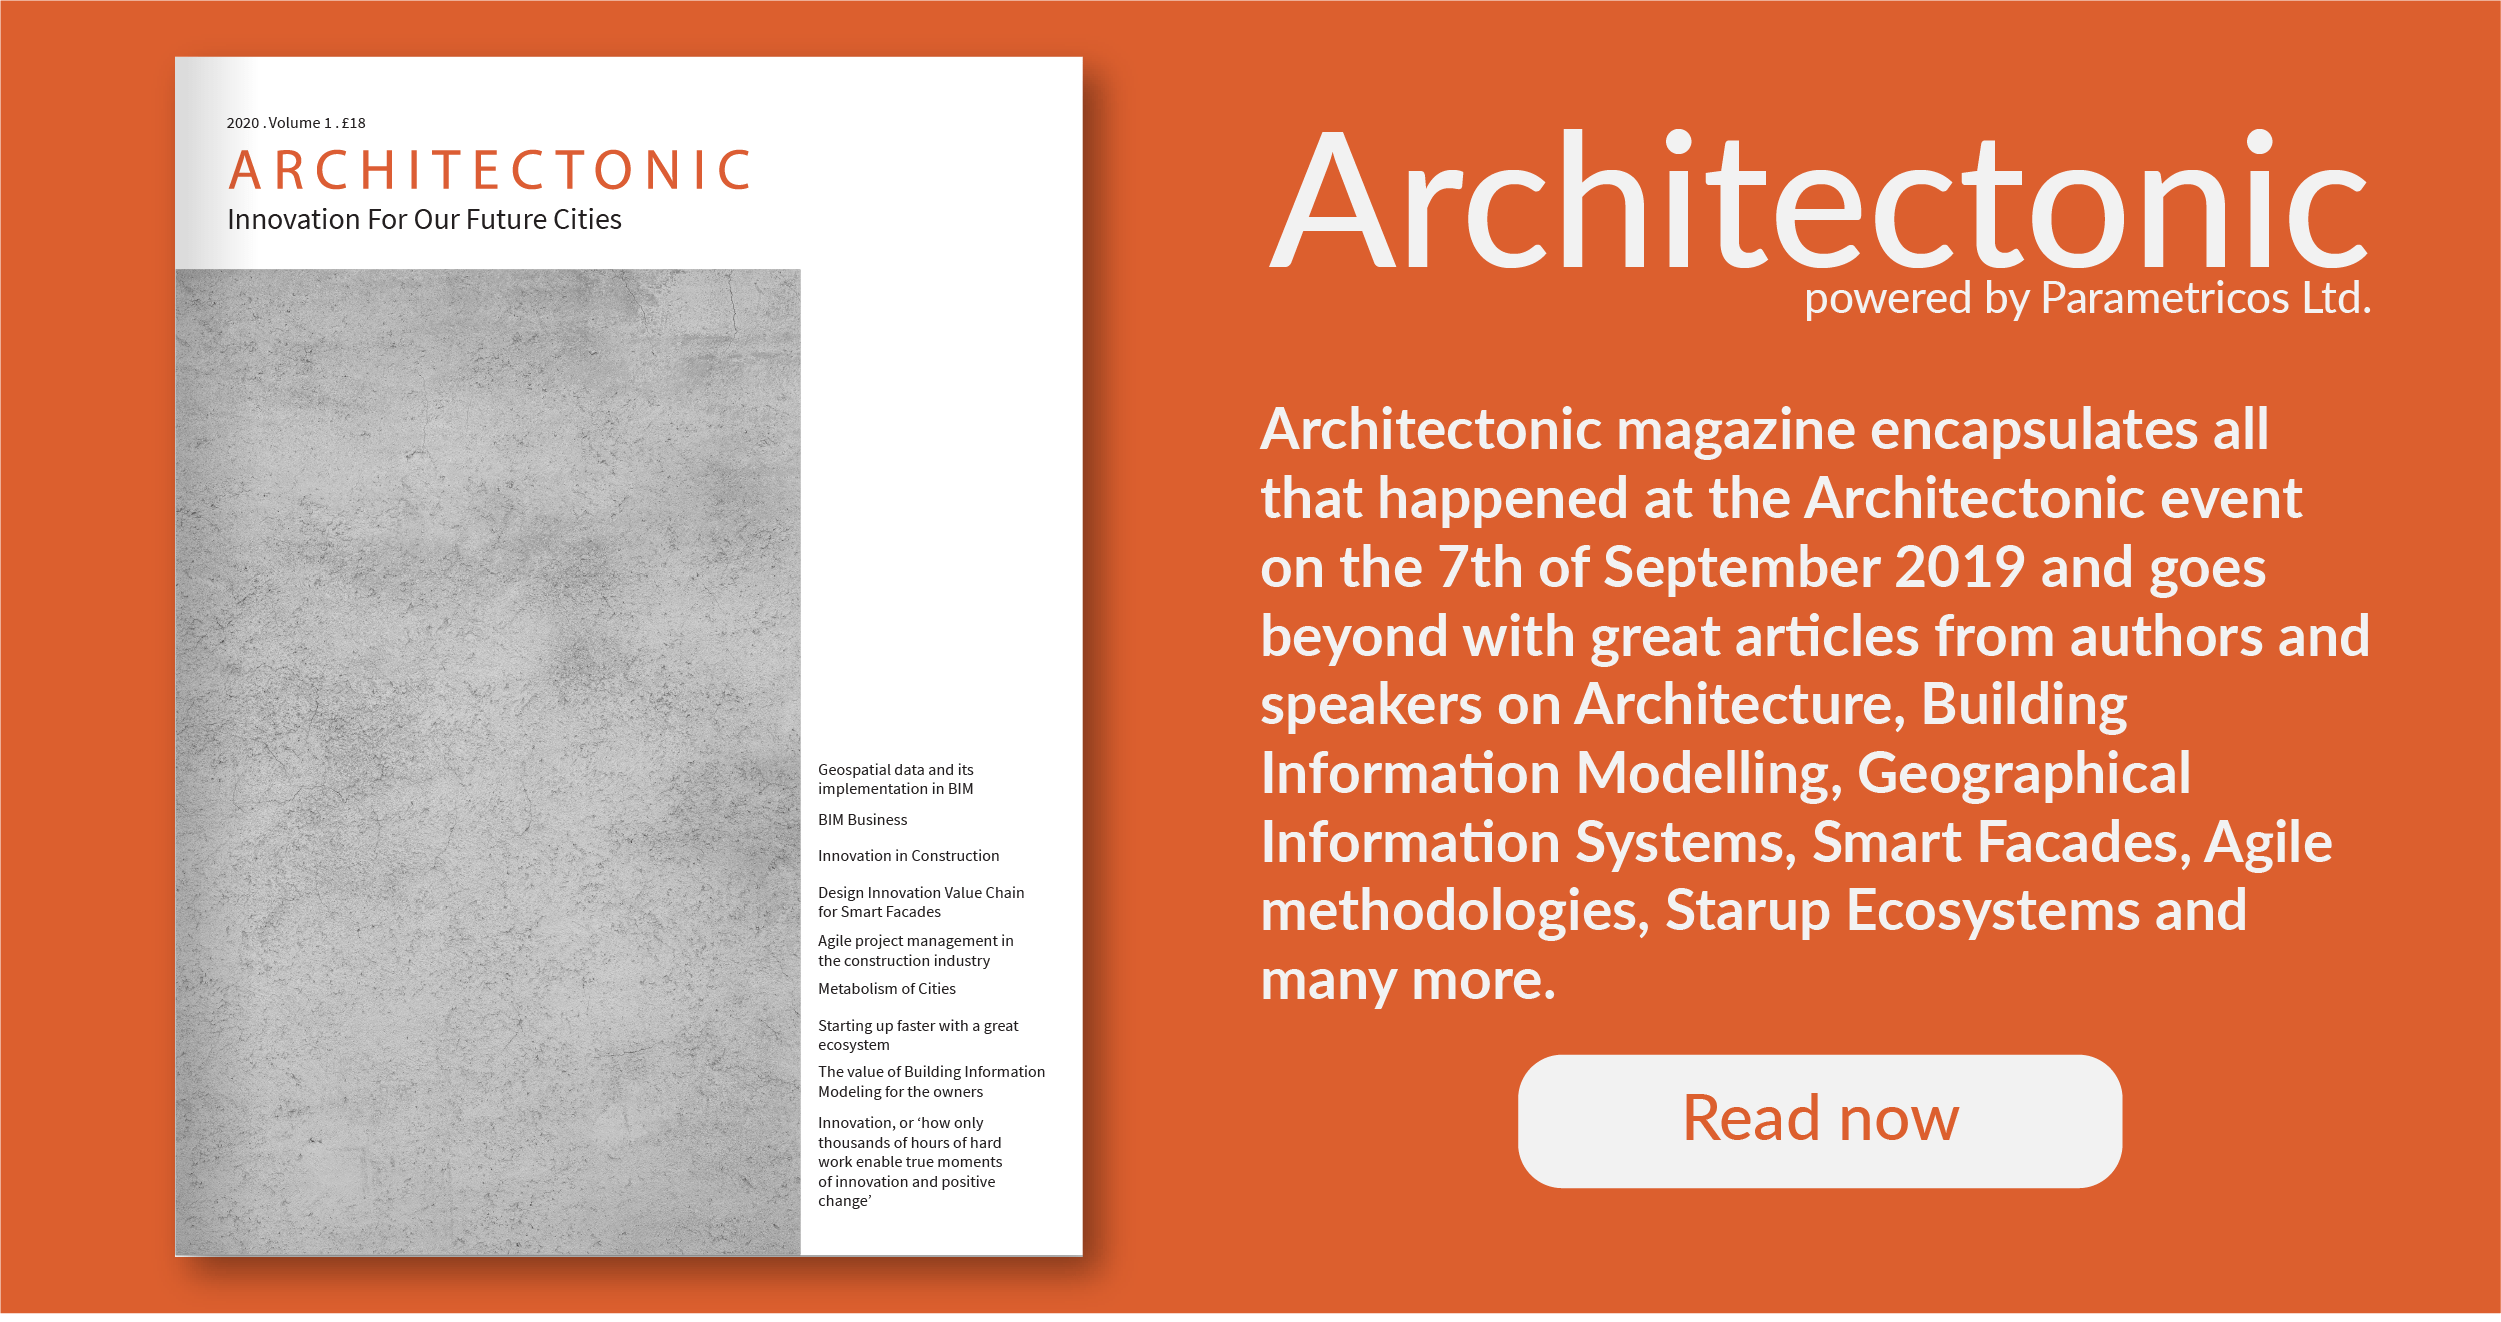 Architectonic Magazine is now available. Get your own edition at Architectonic